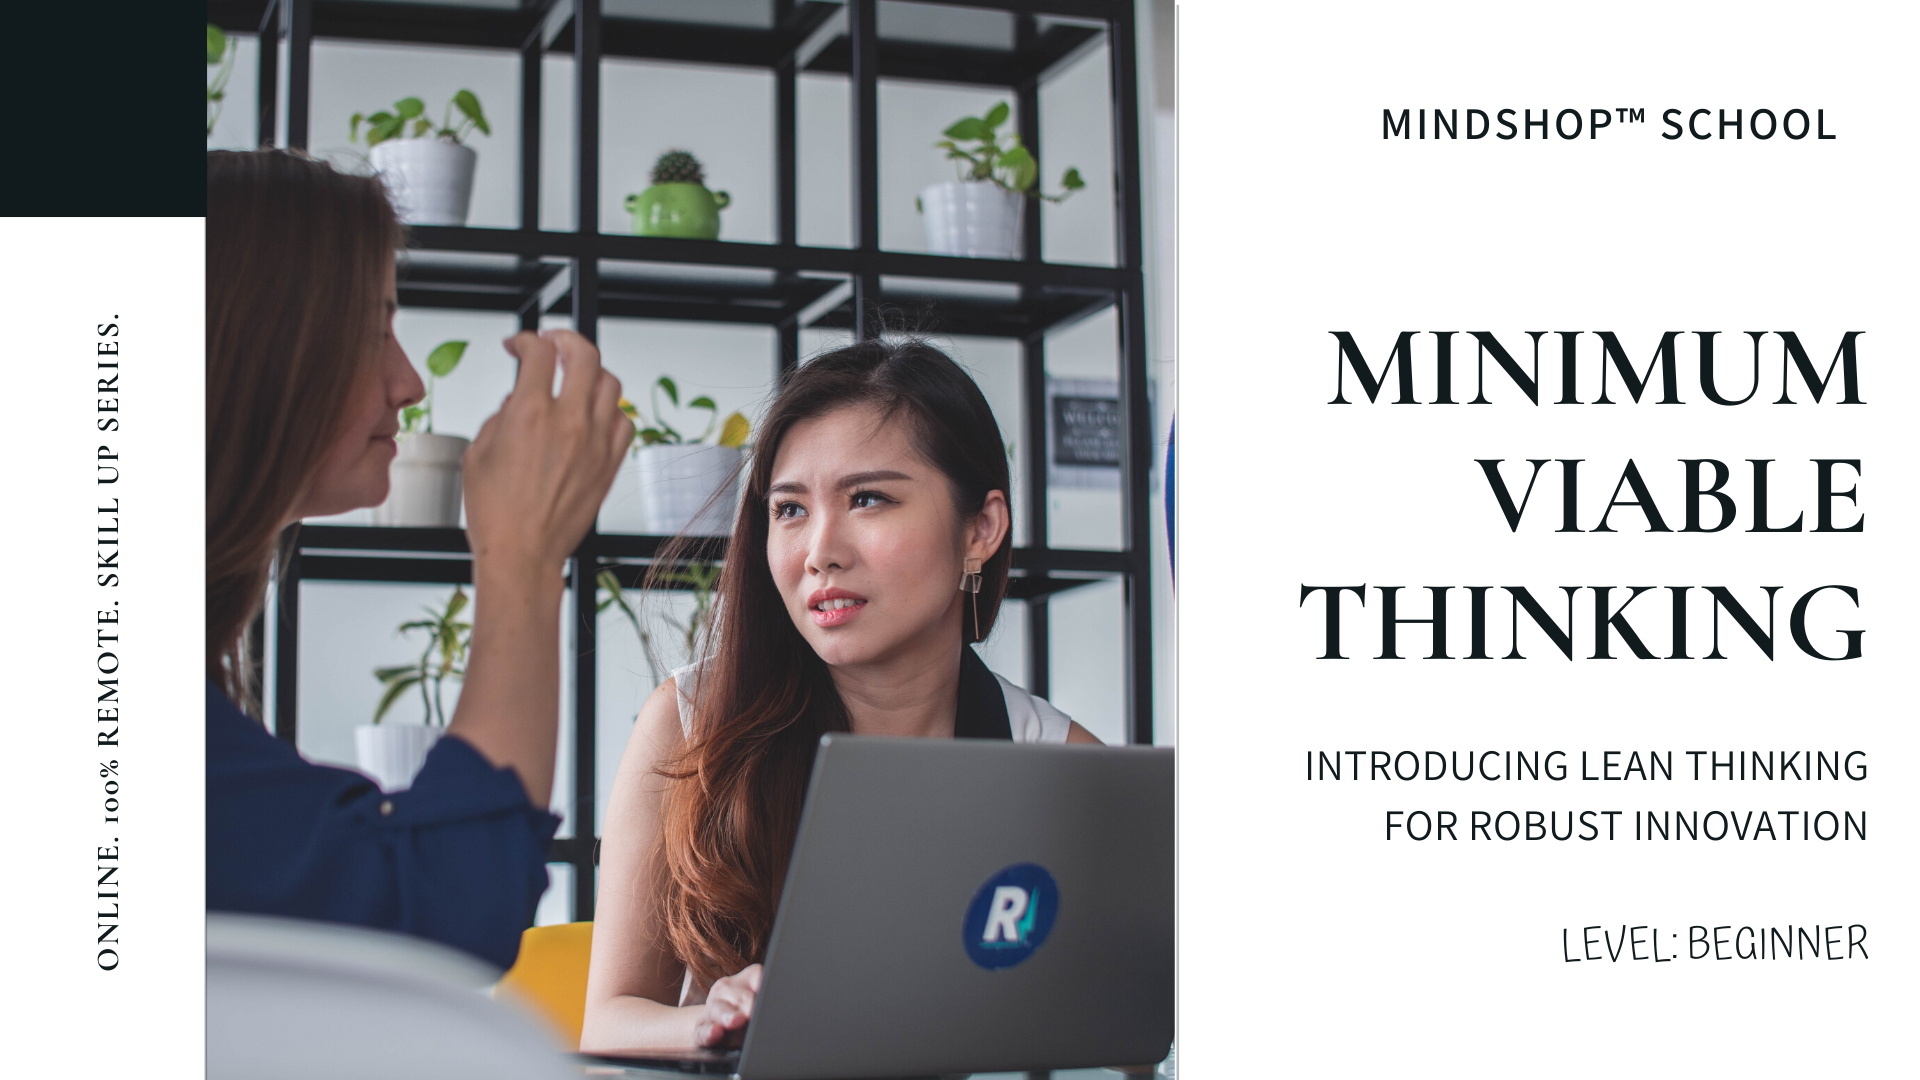 MINDSHOP Webinar | Develop Innovative Product with Minimum Viable Thinking